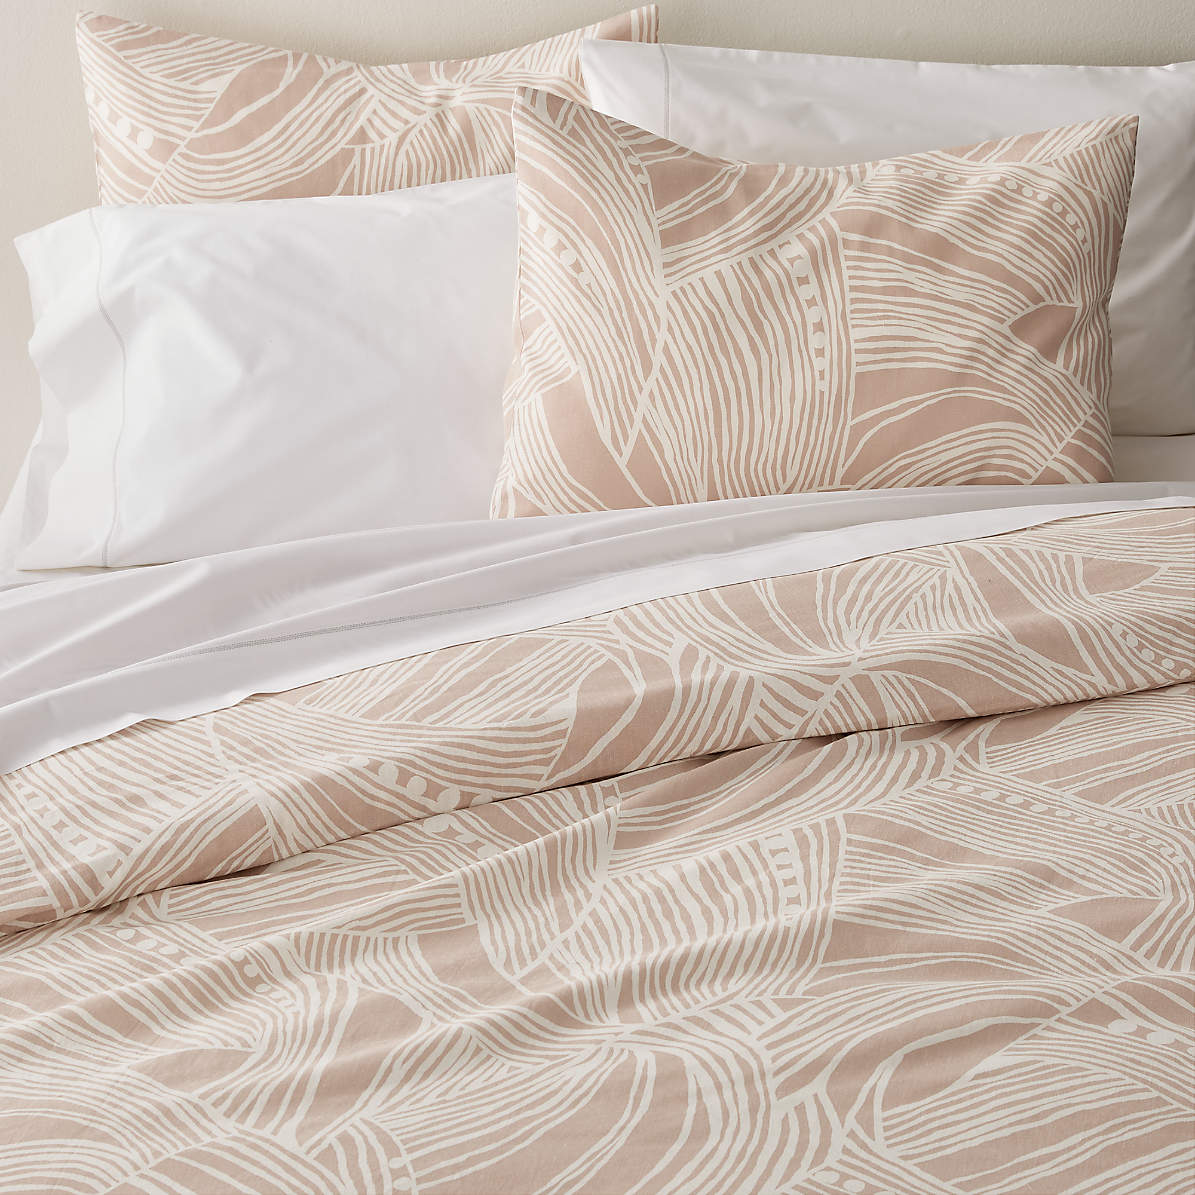 Anika Blush Pink Duvet Covers And Pillow Shams Crate And Barrel Canada